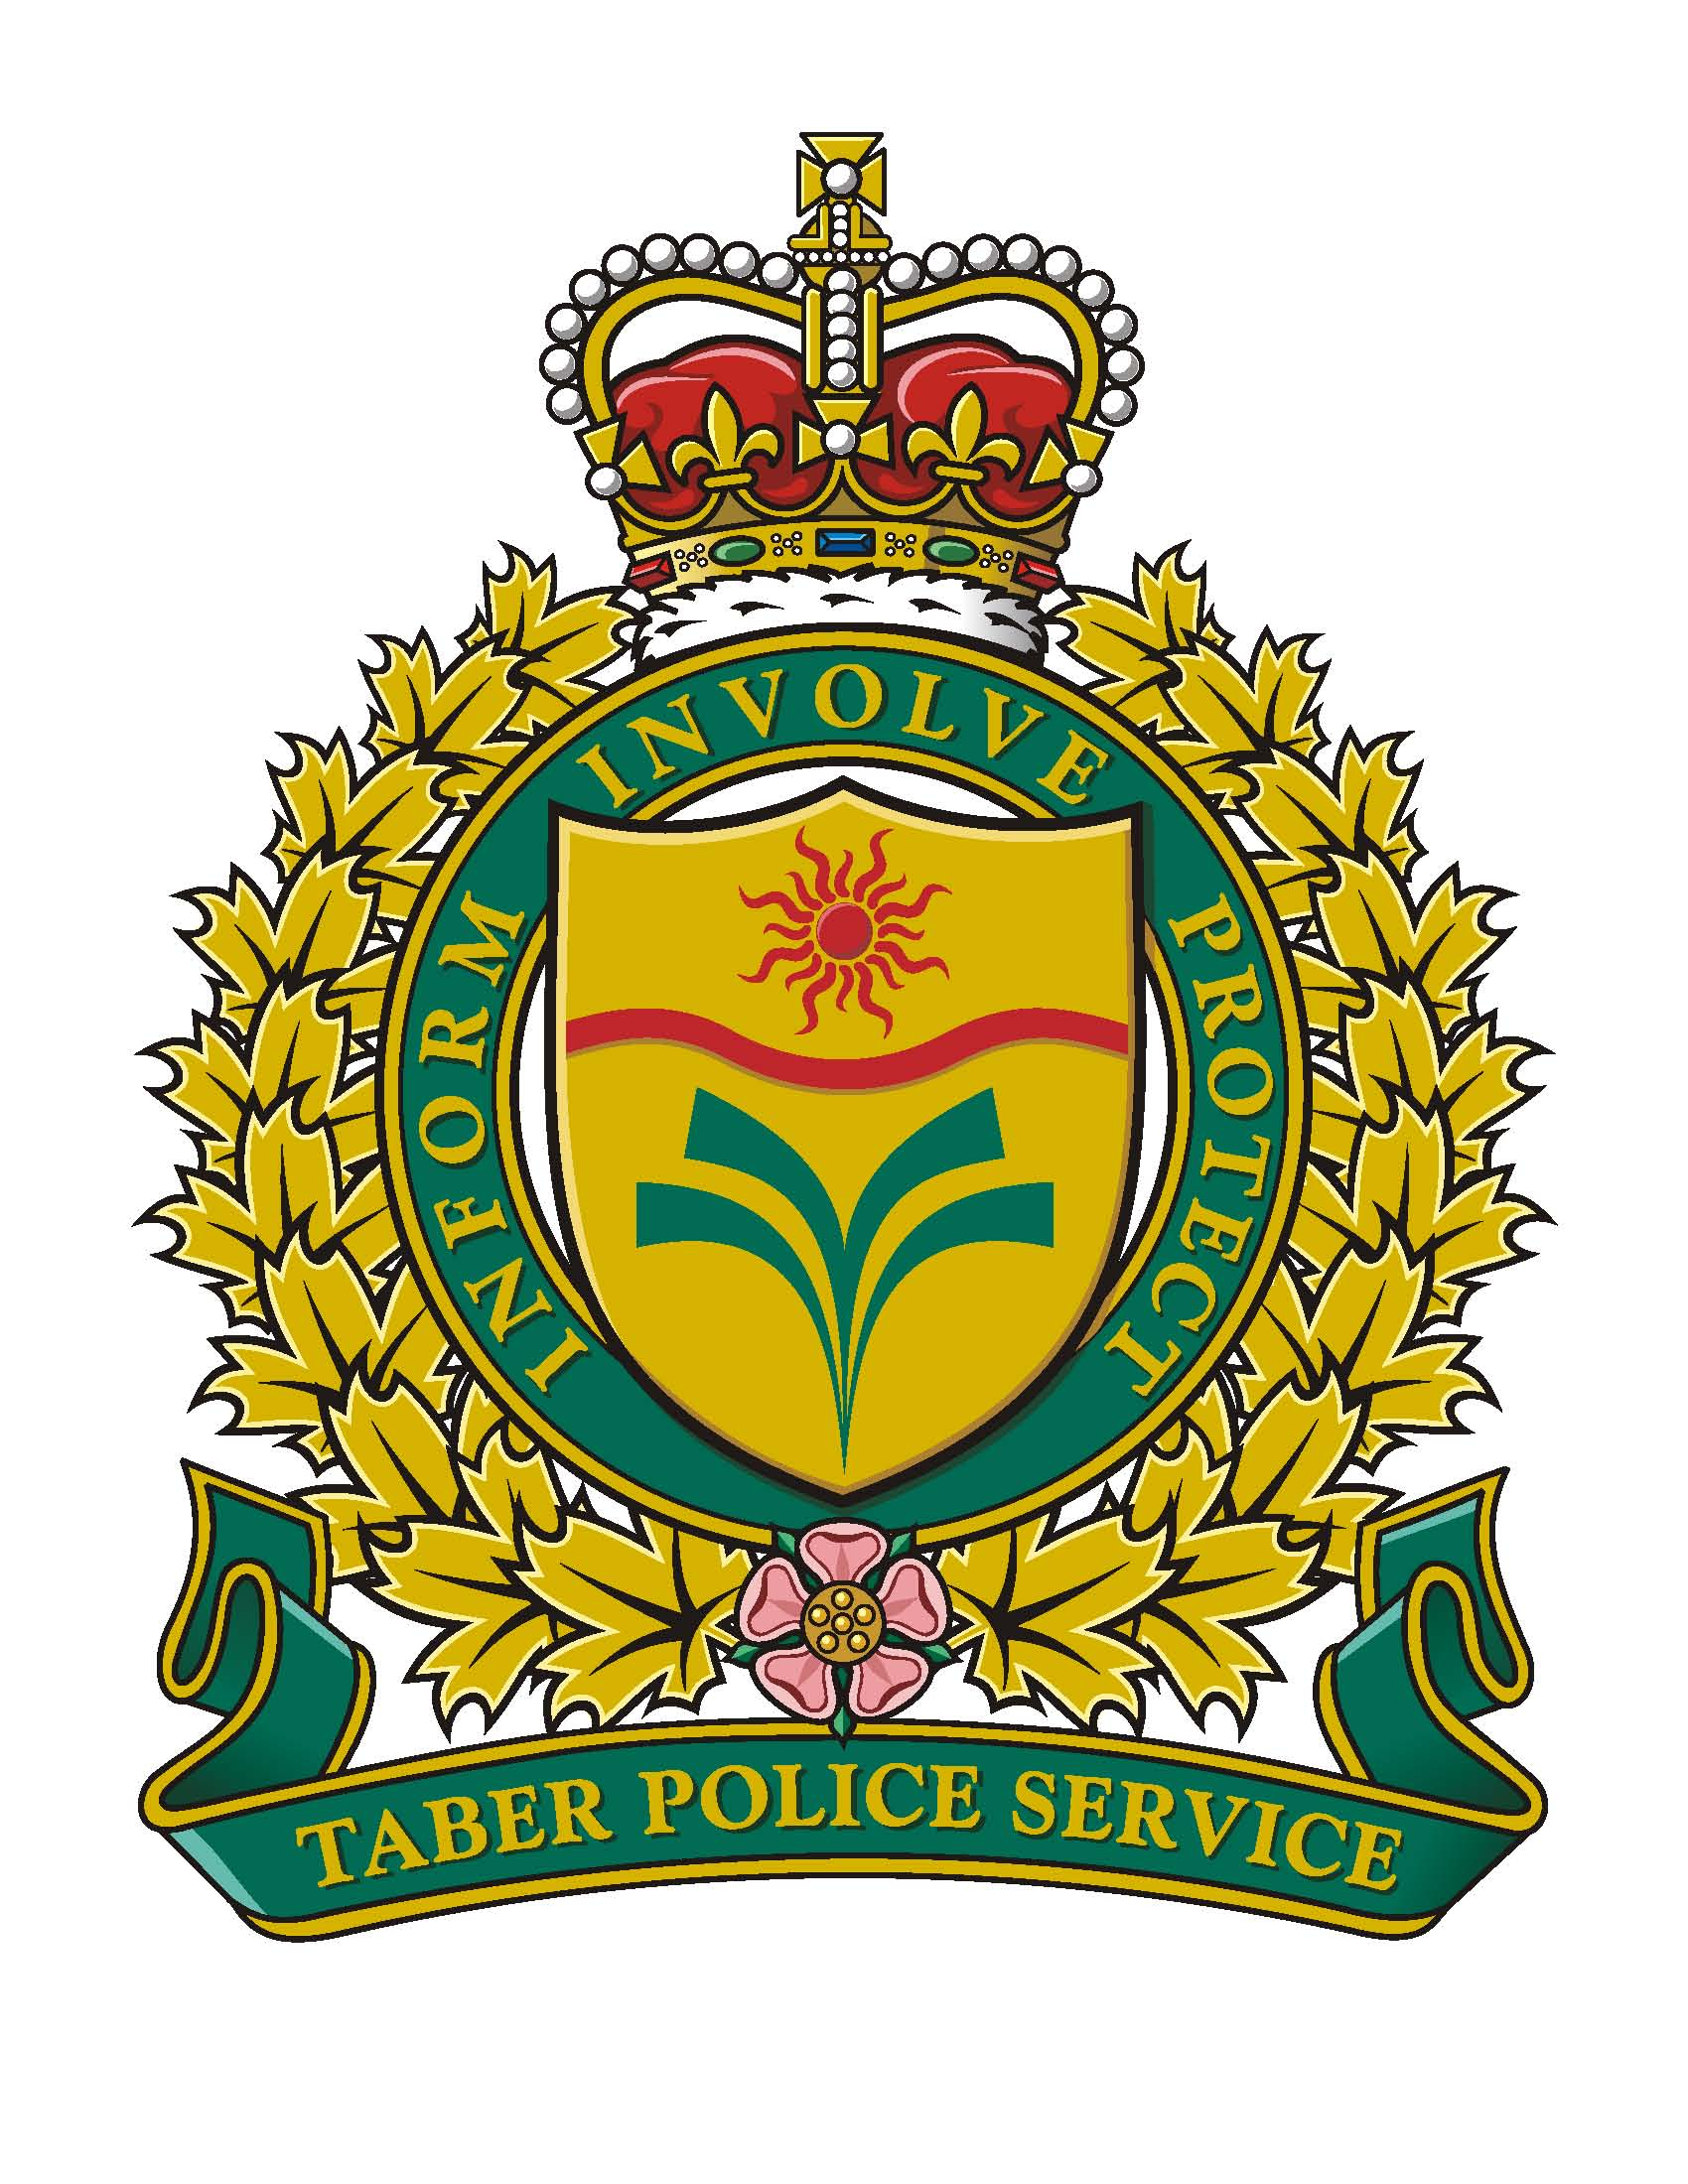 Taber Police Service Adult Community Survey 2020